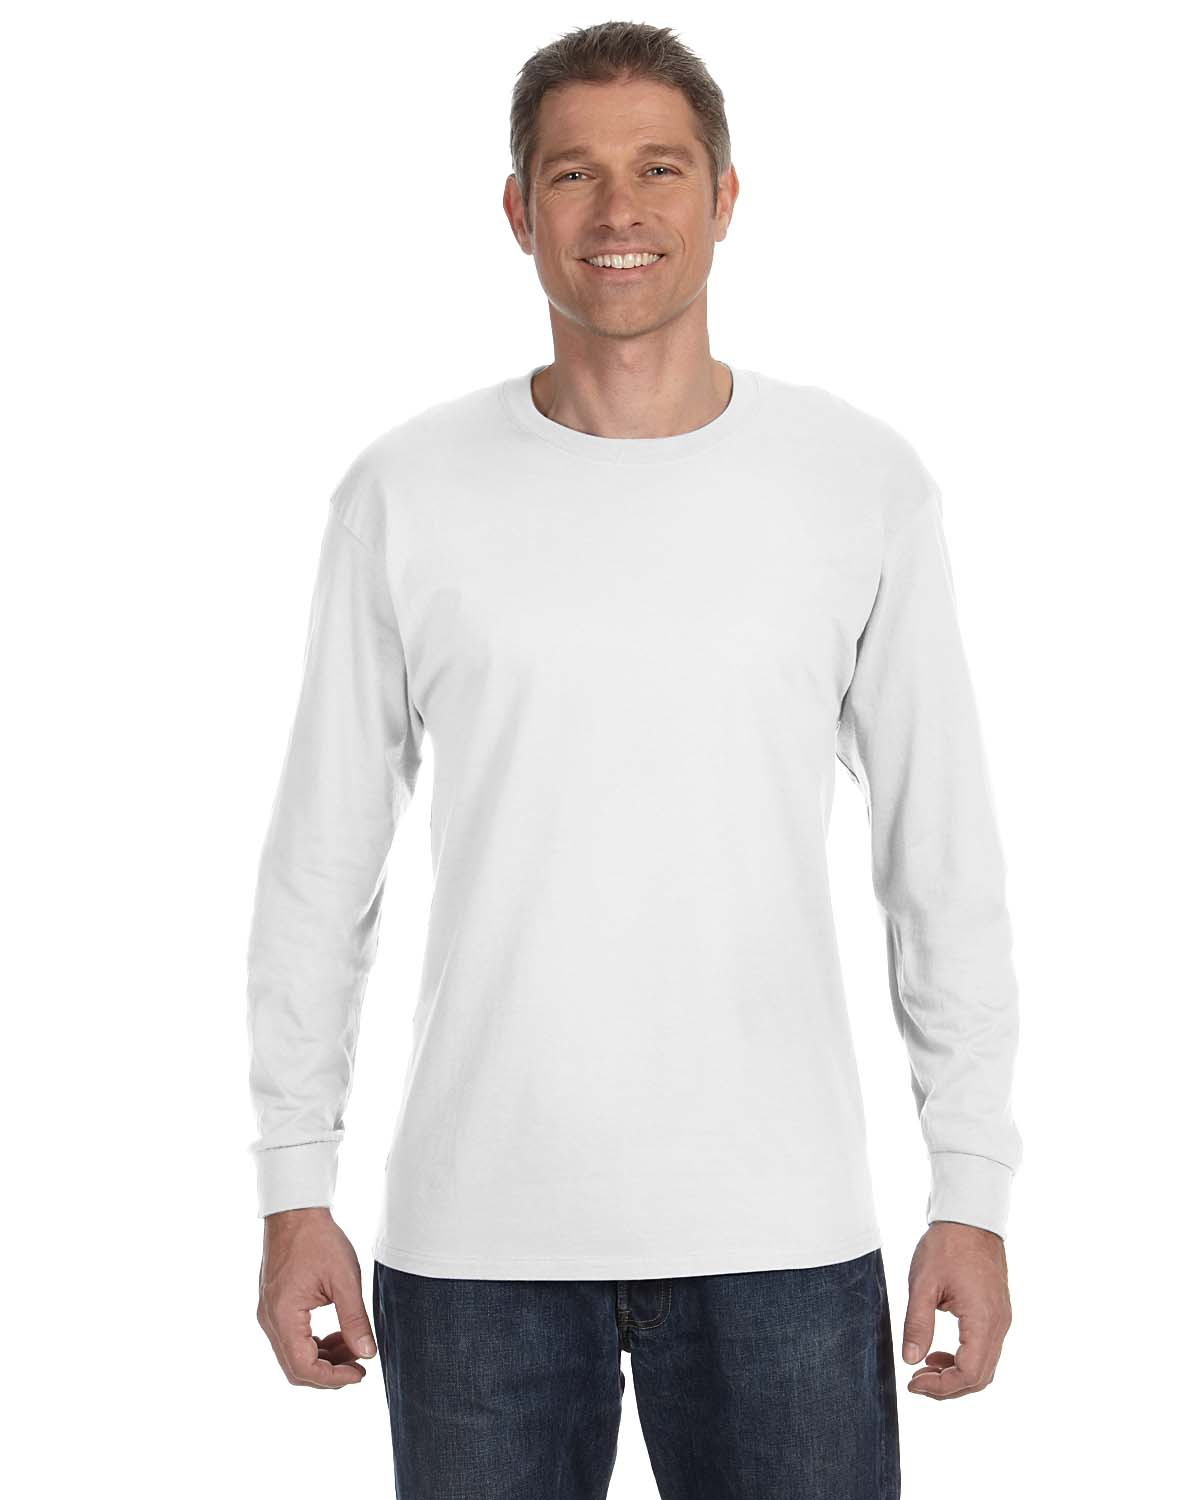 Hanes® 5586 Tagless® 100% Cotton Long Sleeve T-Shirt